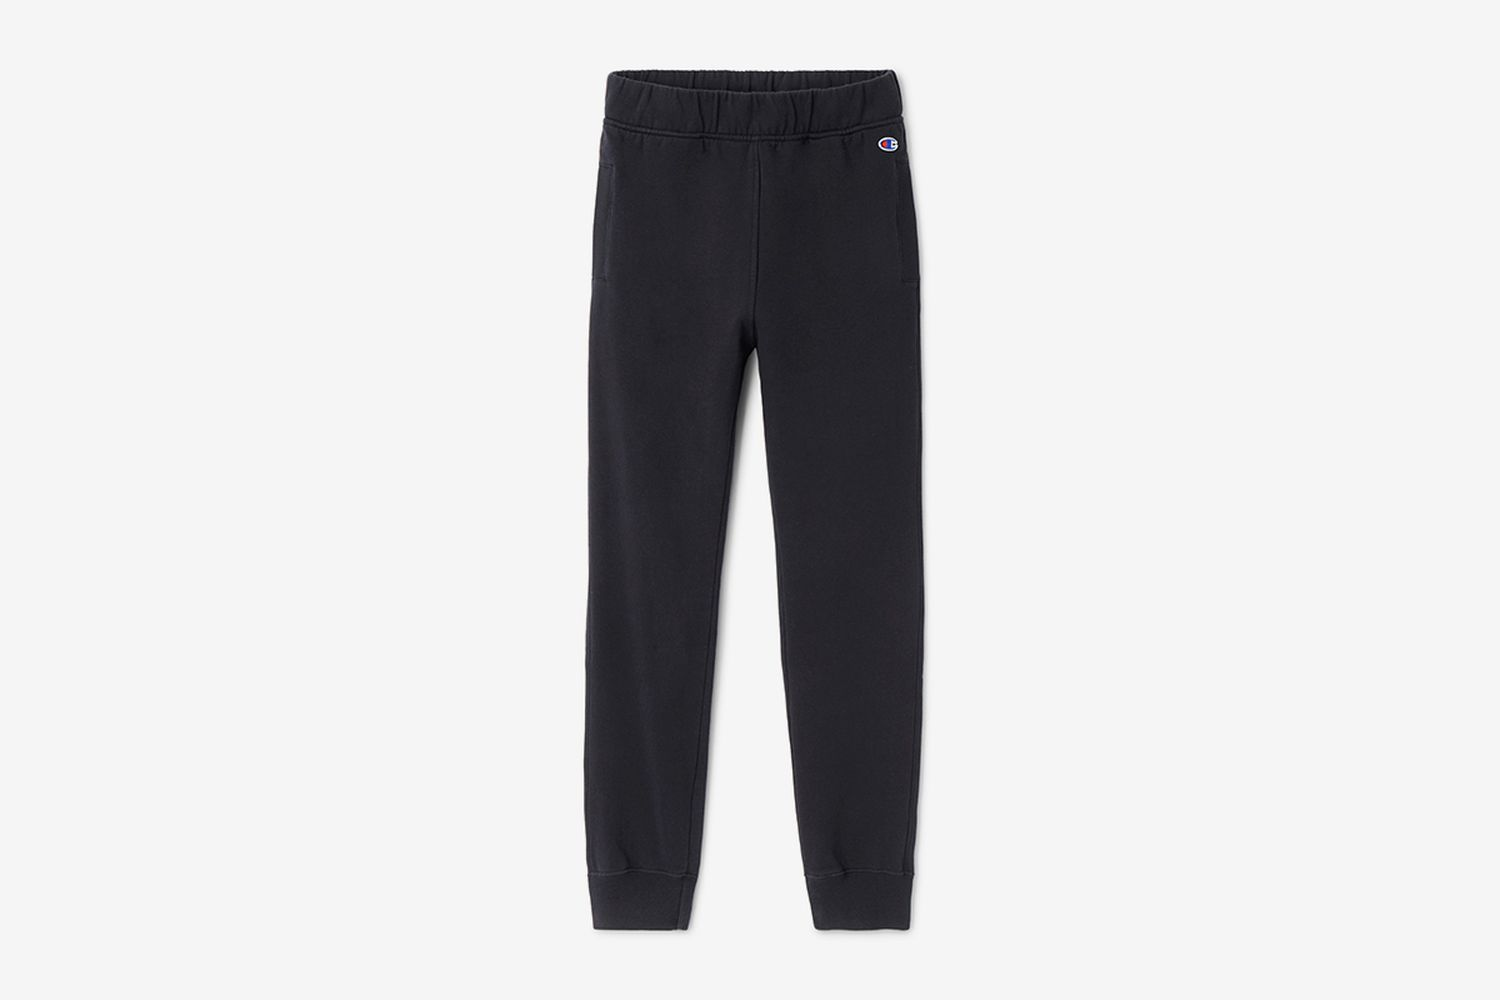 Roadman Sweatpants